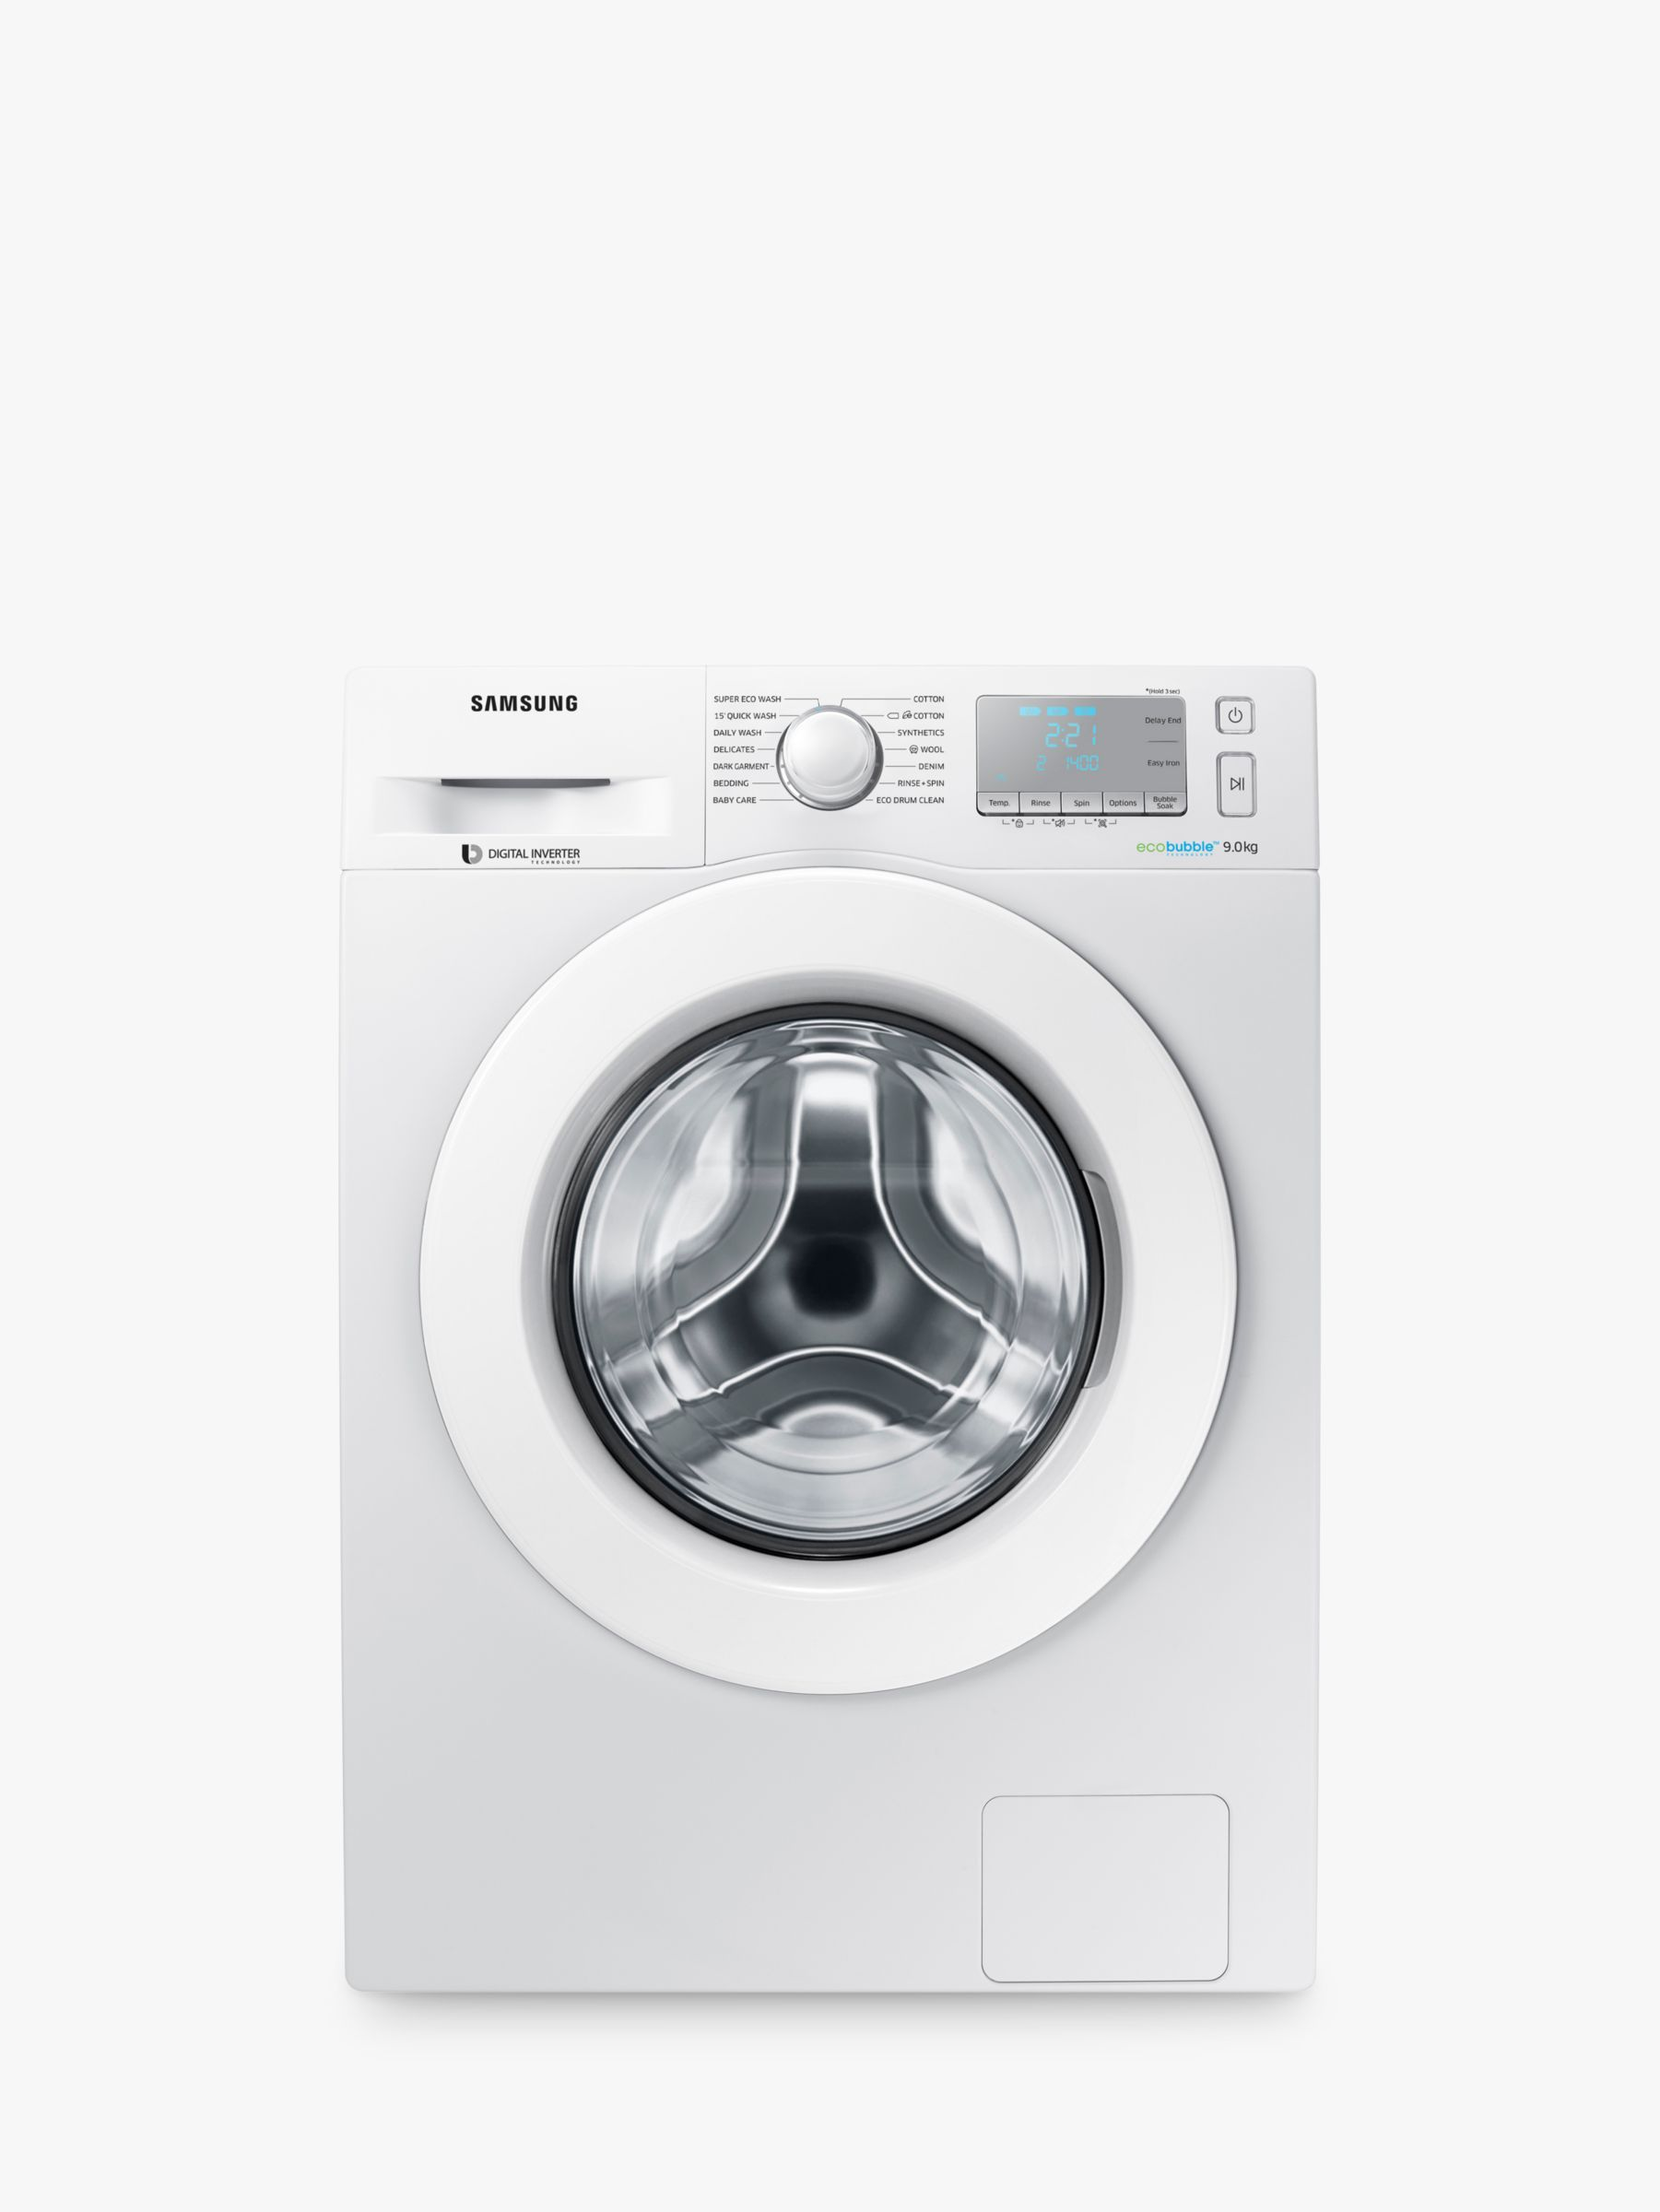 Samsung Samsung WW90J5456MA ecobubble™ Freestanding Washing Machine, 9kg Load, A+++ Energy Rating, 1400rpm Spin, White